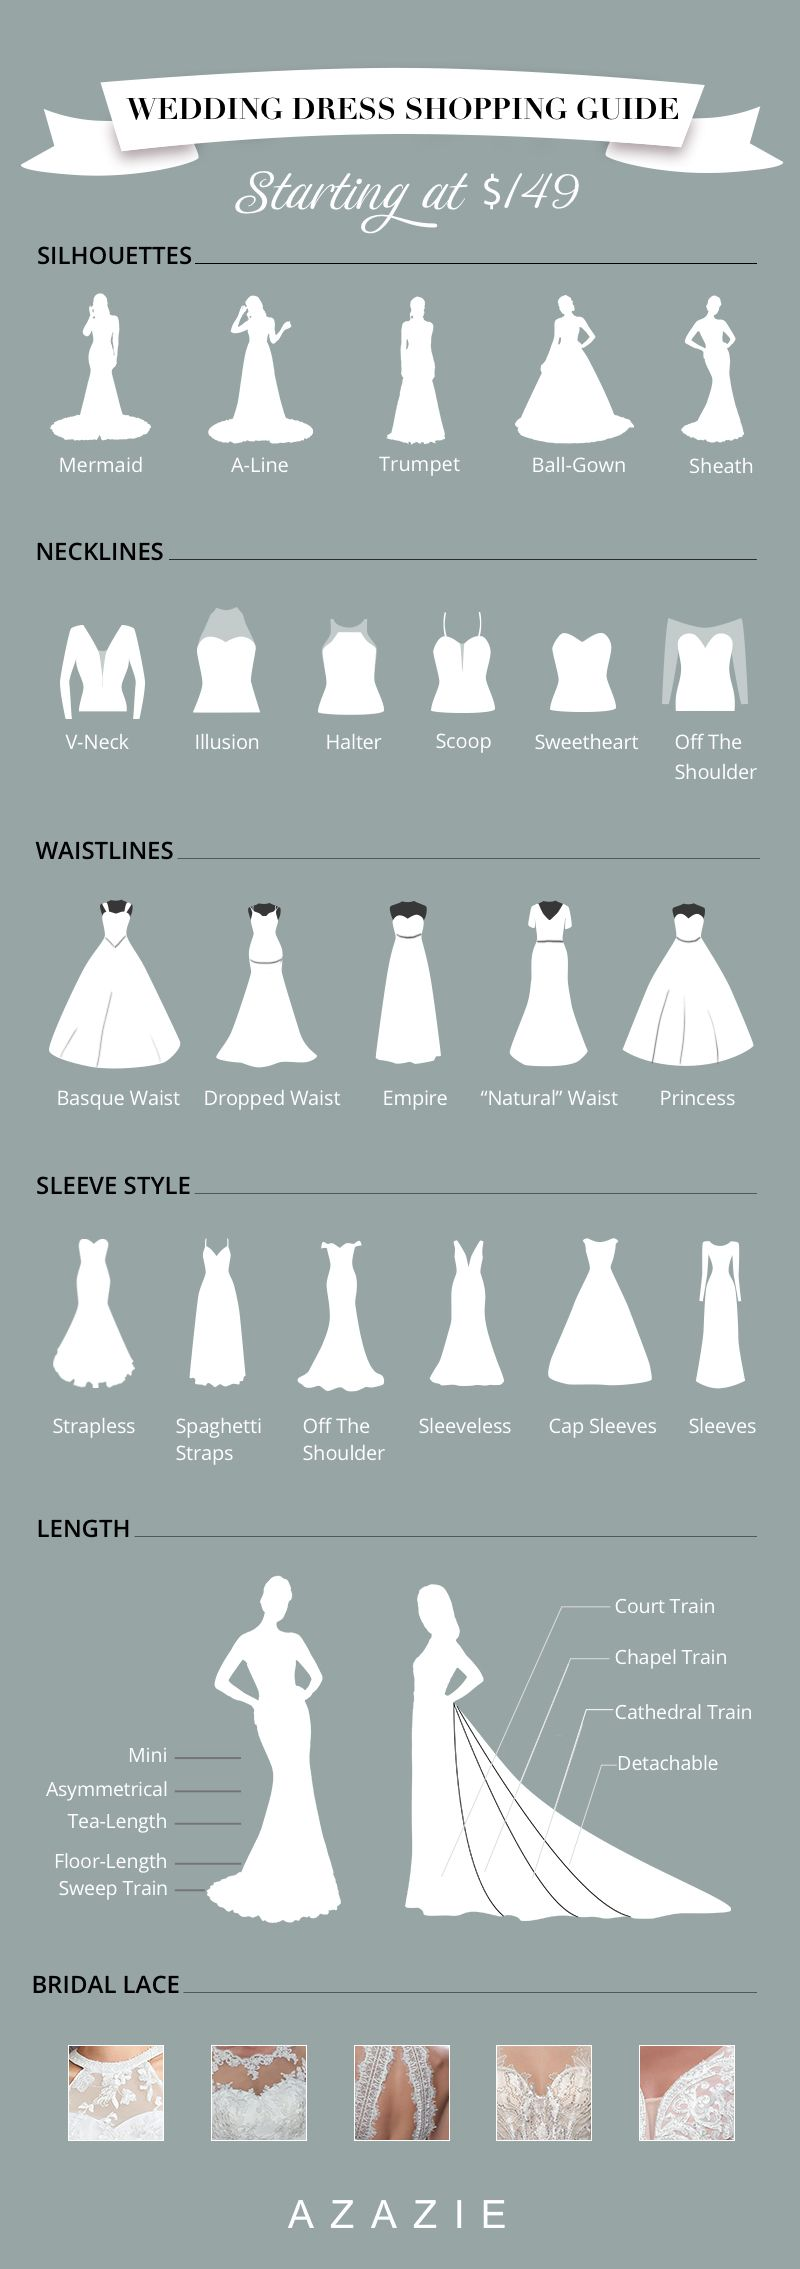 Ultimate Guide To Wedding Dresses Wedding Dress Styles Guide Wedding Dress Types Wedding Dress Styles Chart